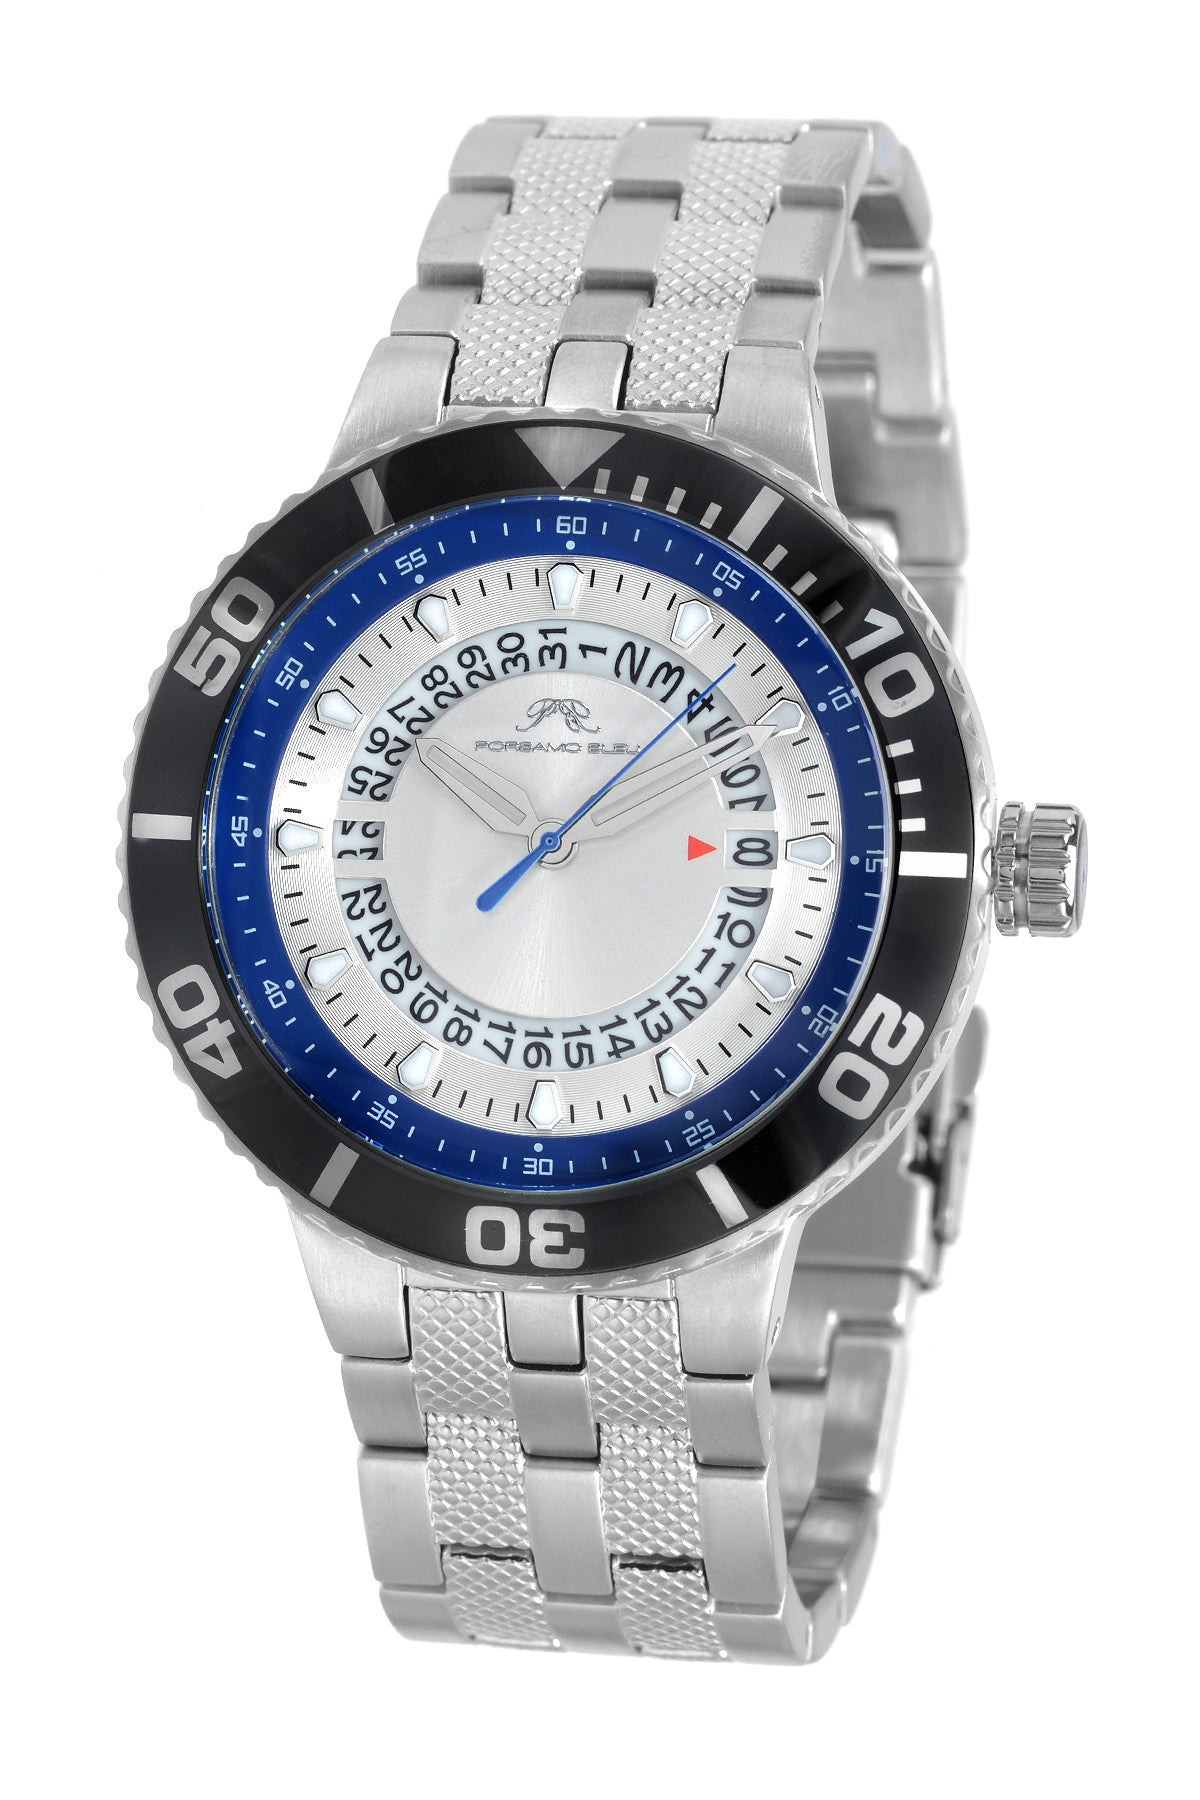 Porsamo Bleu Sebastian luxury men's stainless steel watch, silver, black, blue 462ASES